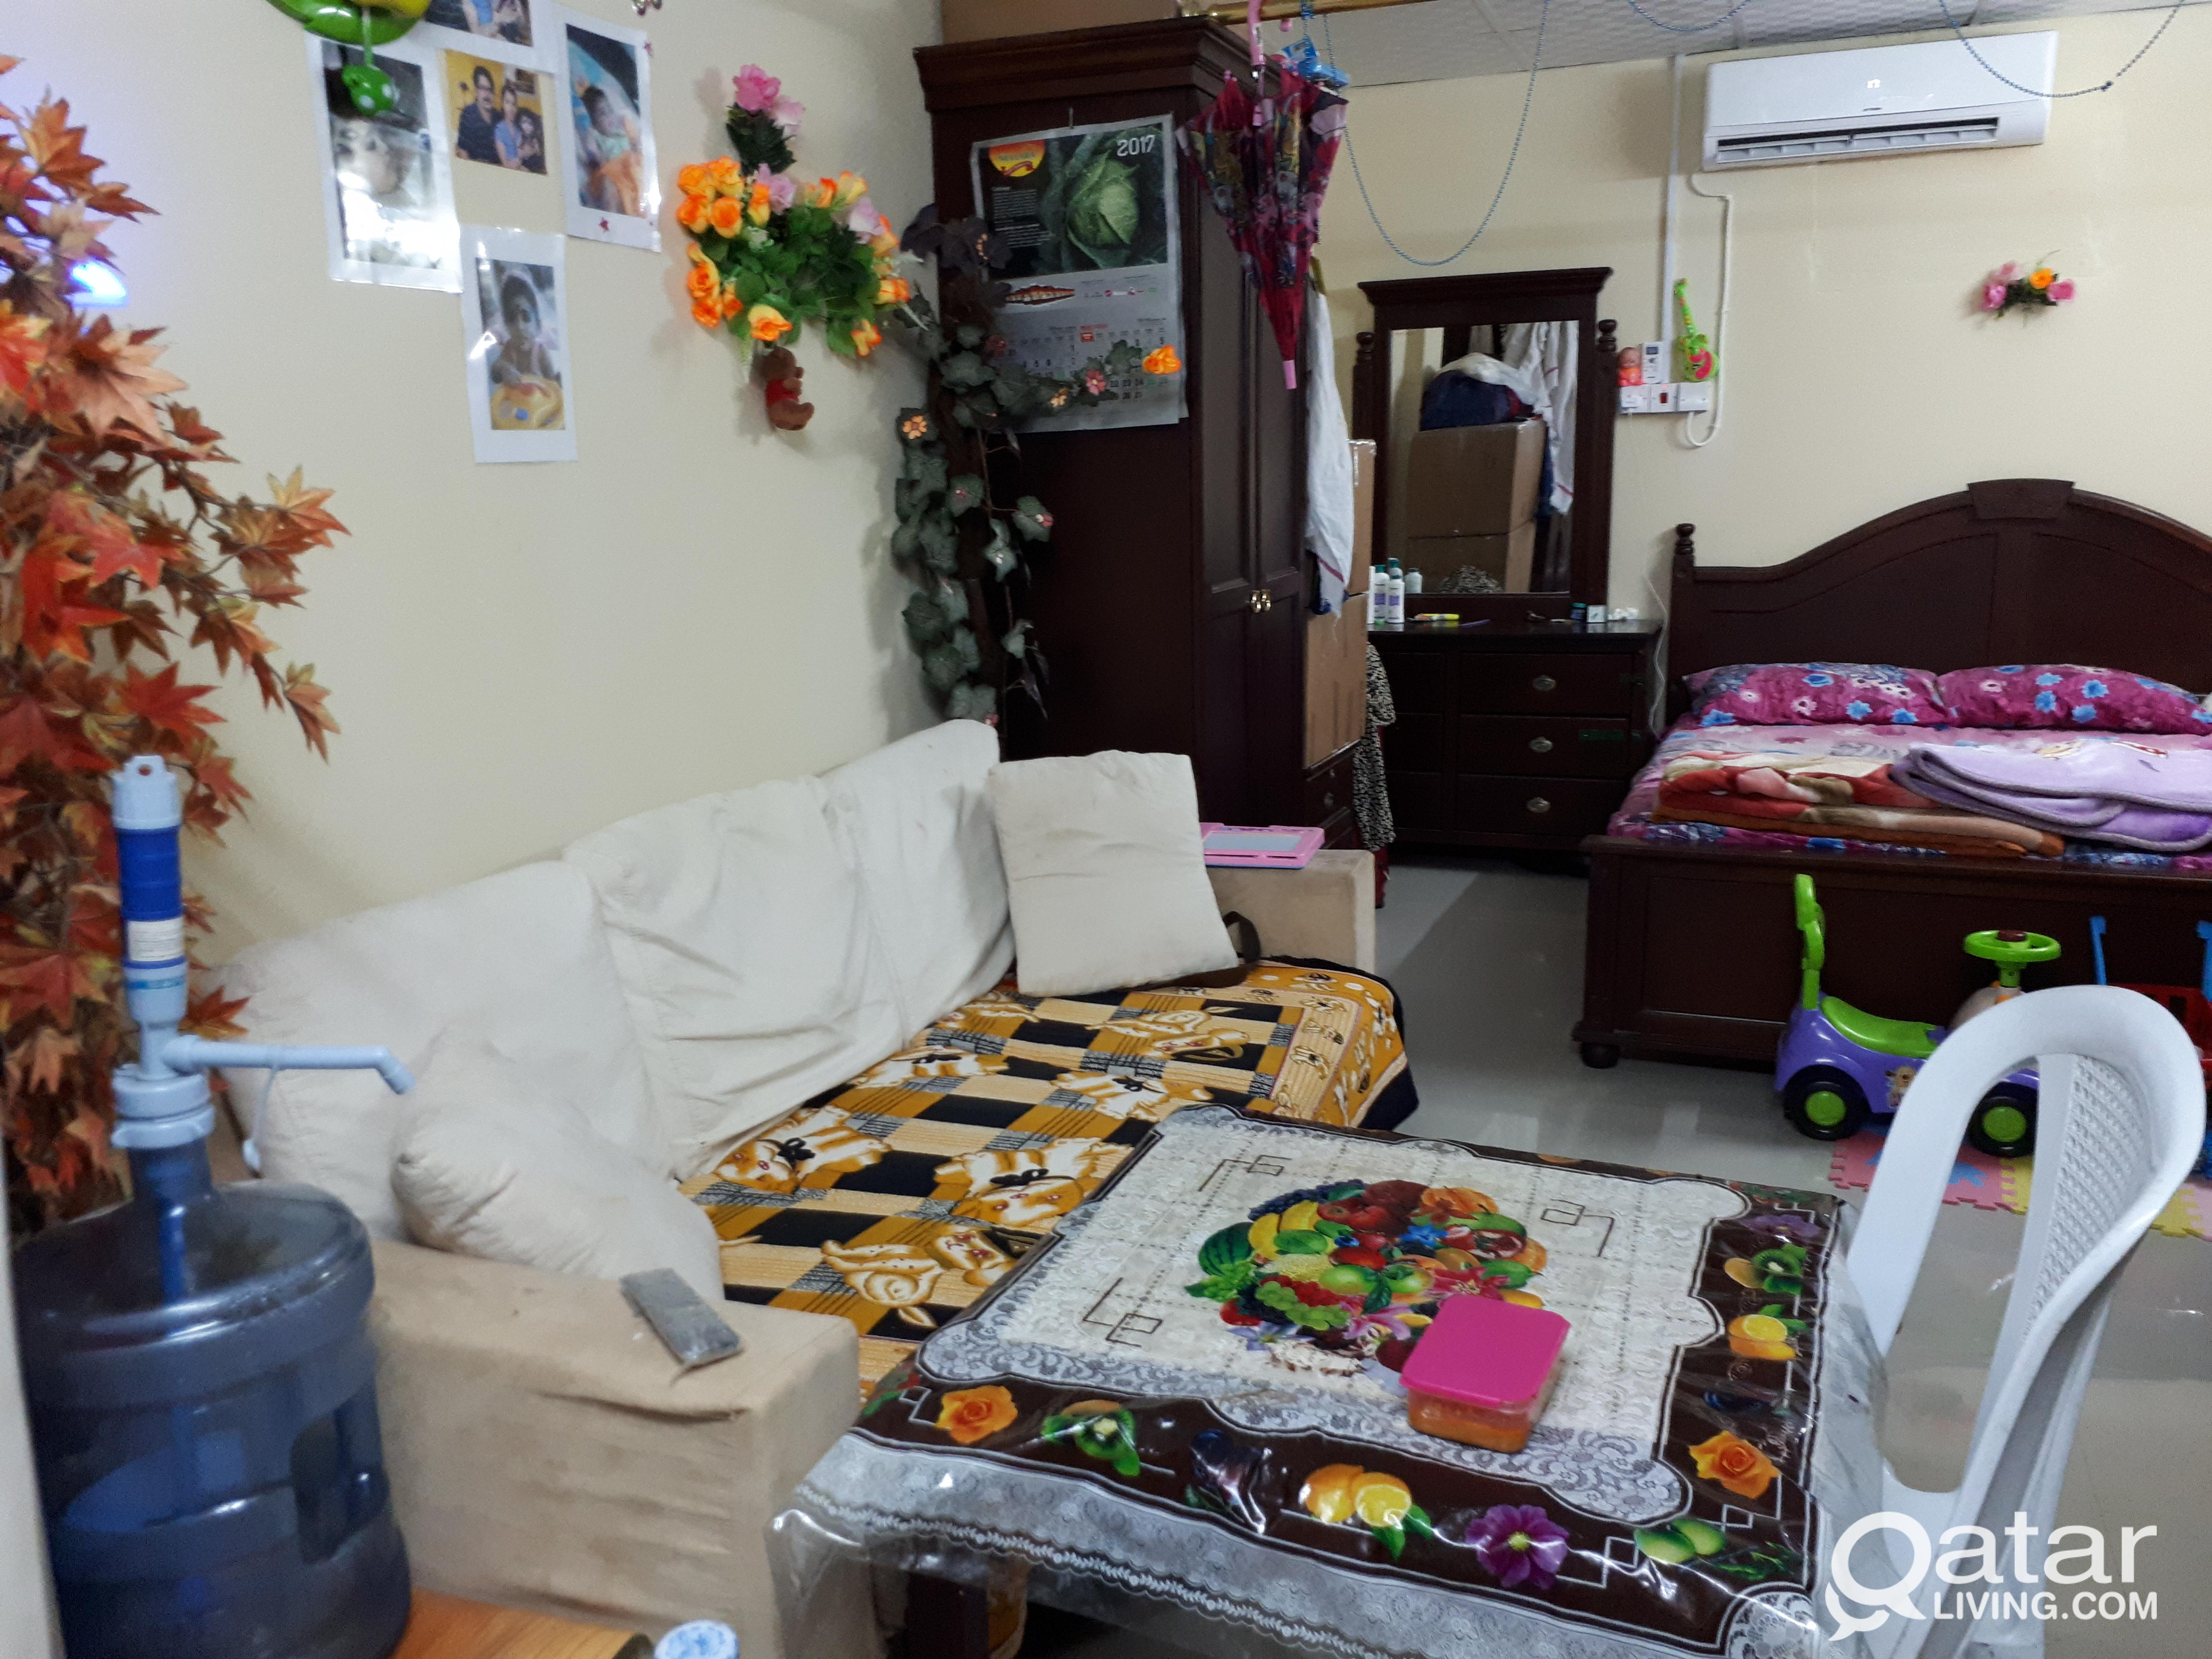 Fully Furnished Studio Family Room For Rent Mura Qatar Living